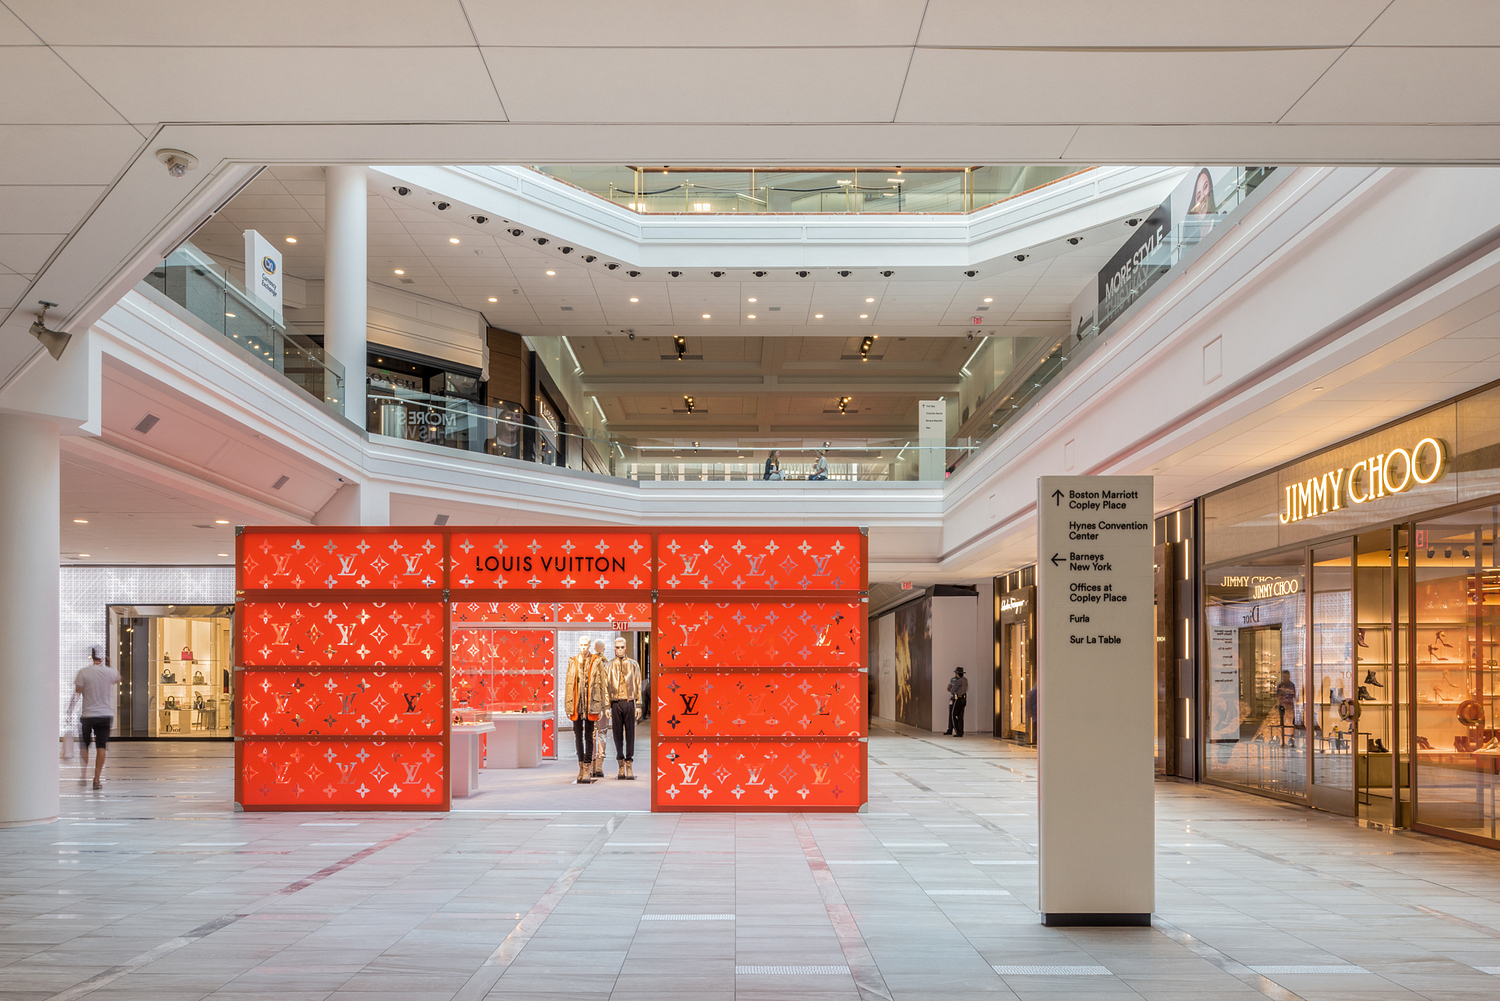 Louis Vuitton pop-up store, shopping mall, Boston